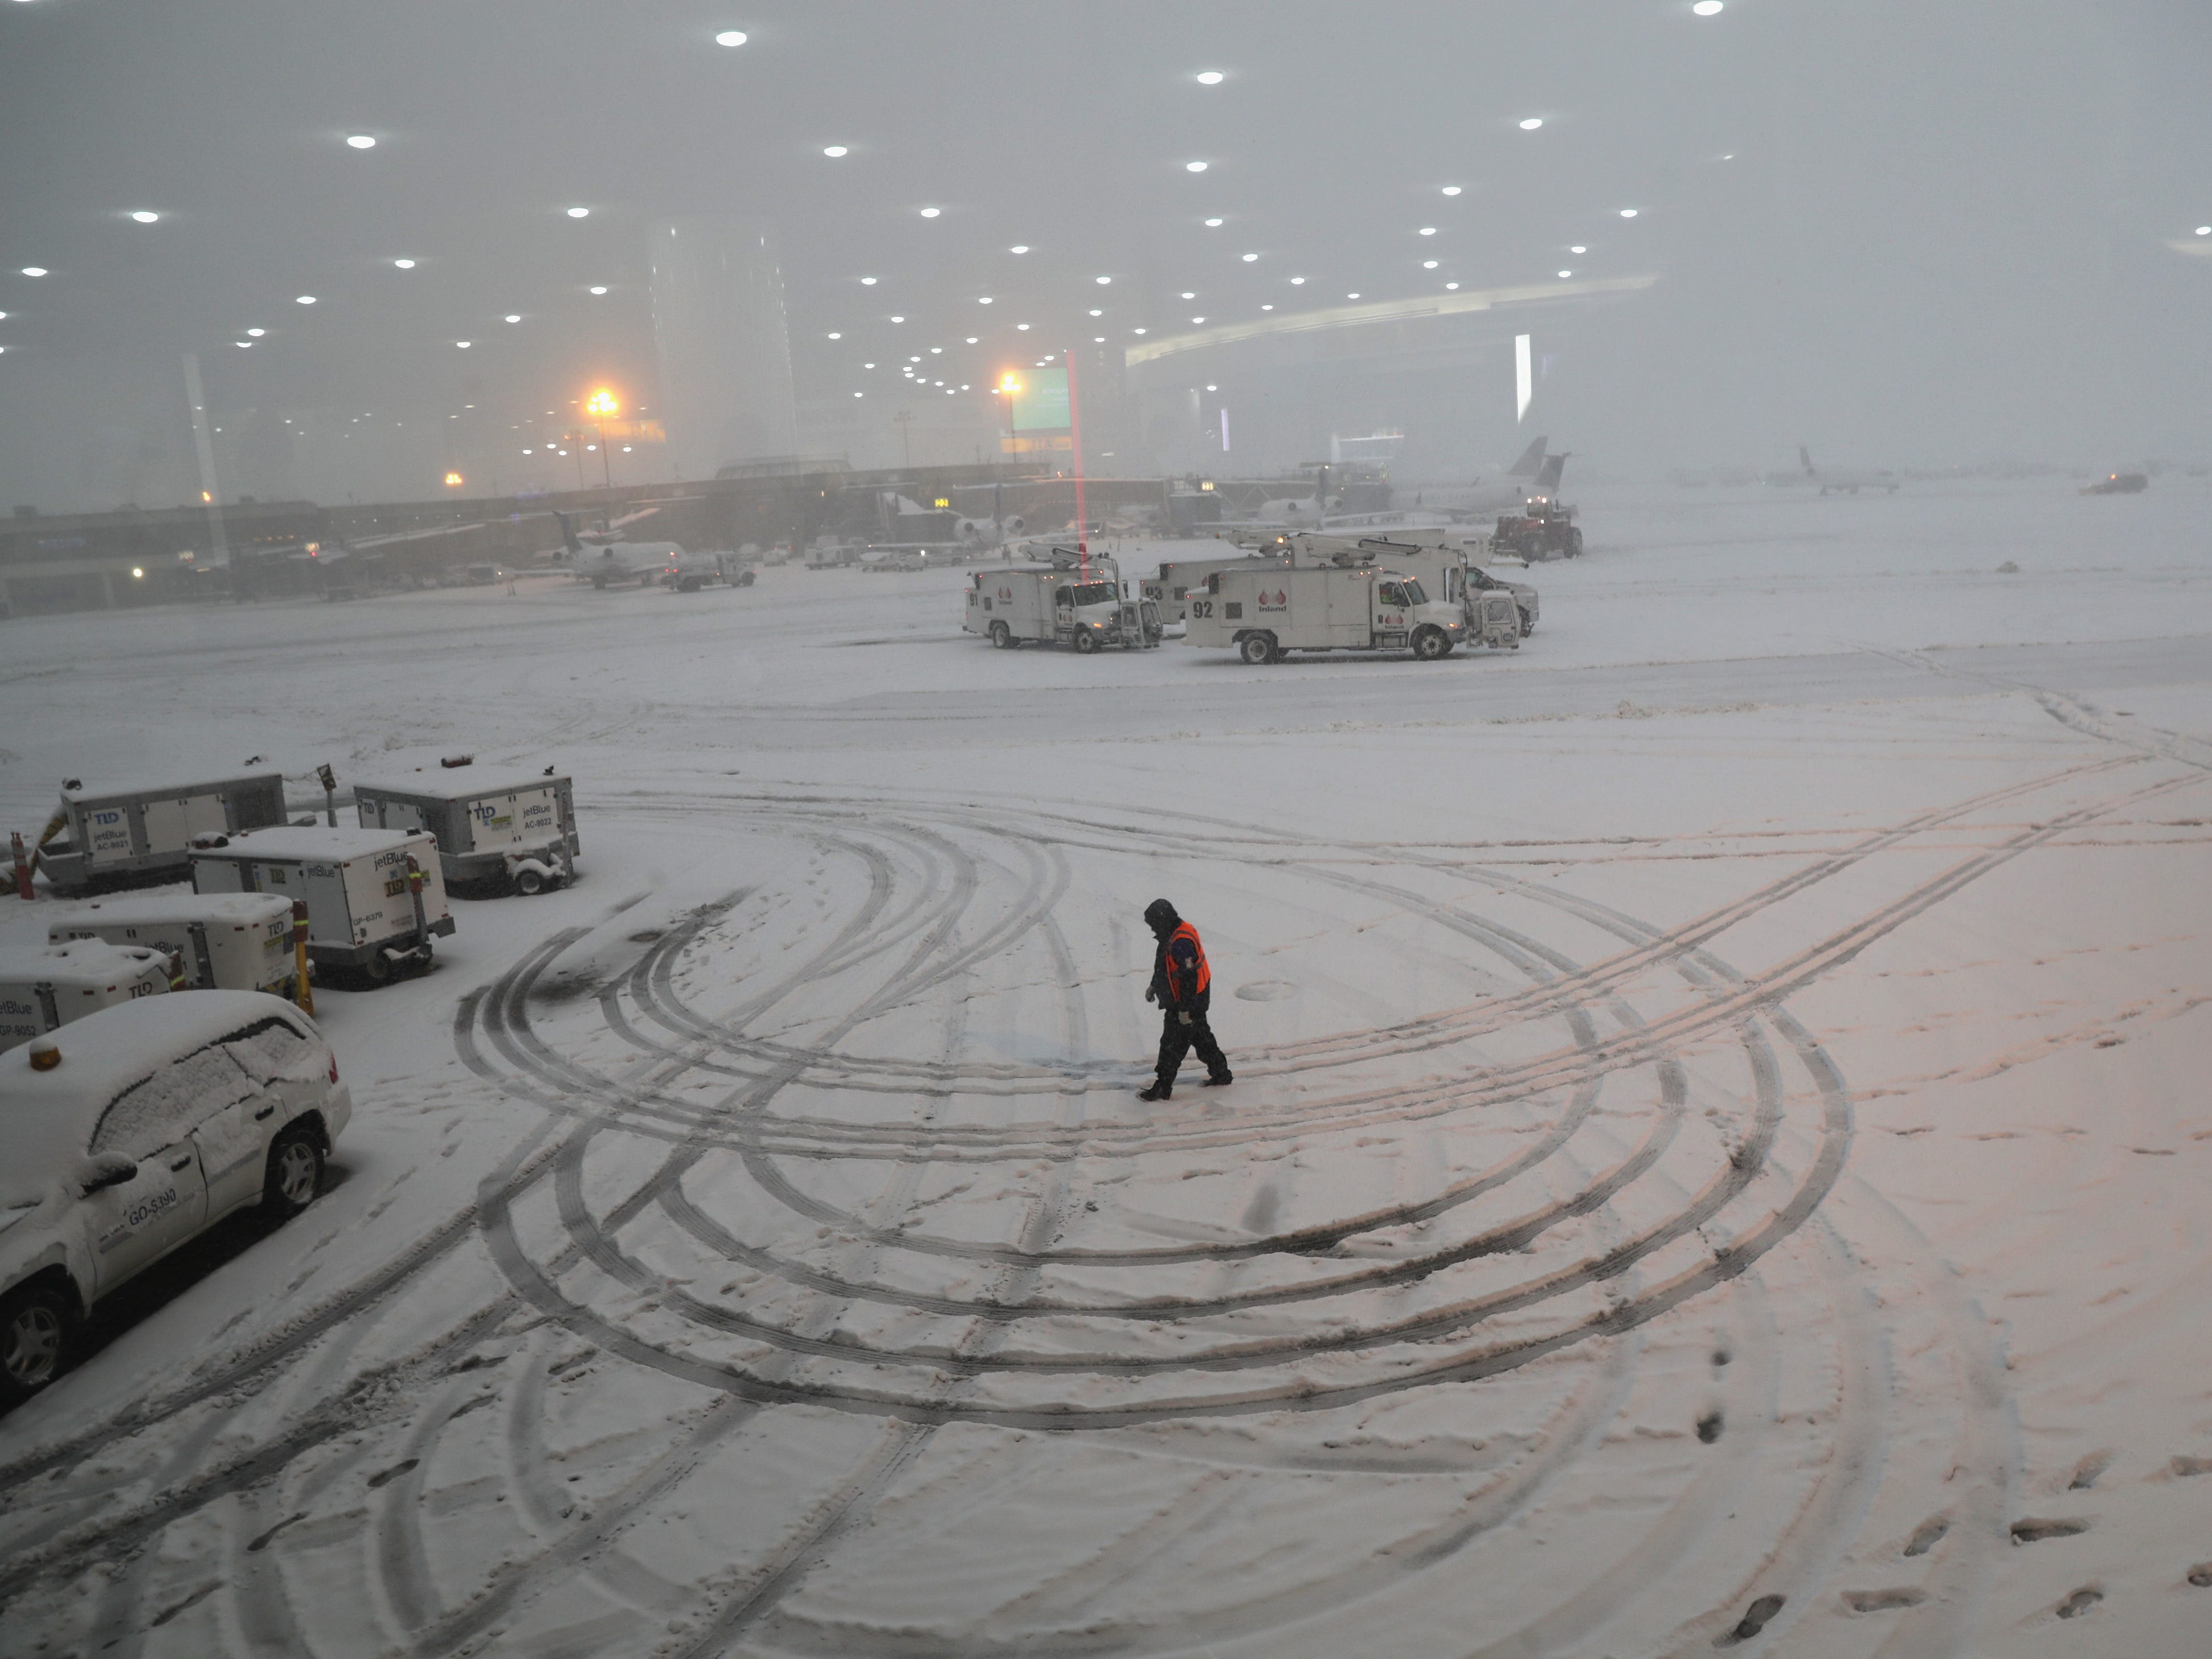 A ground crew member walks through the snow at the Newark Liberty International Airport on Nov. 15, 2018 in Newark, New Jersey.